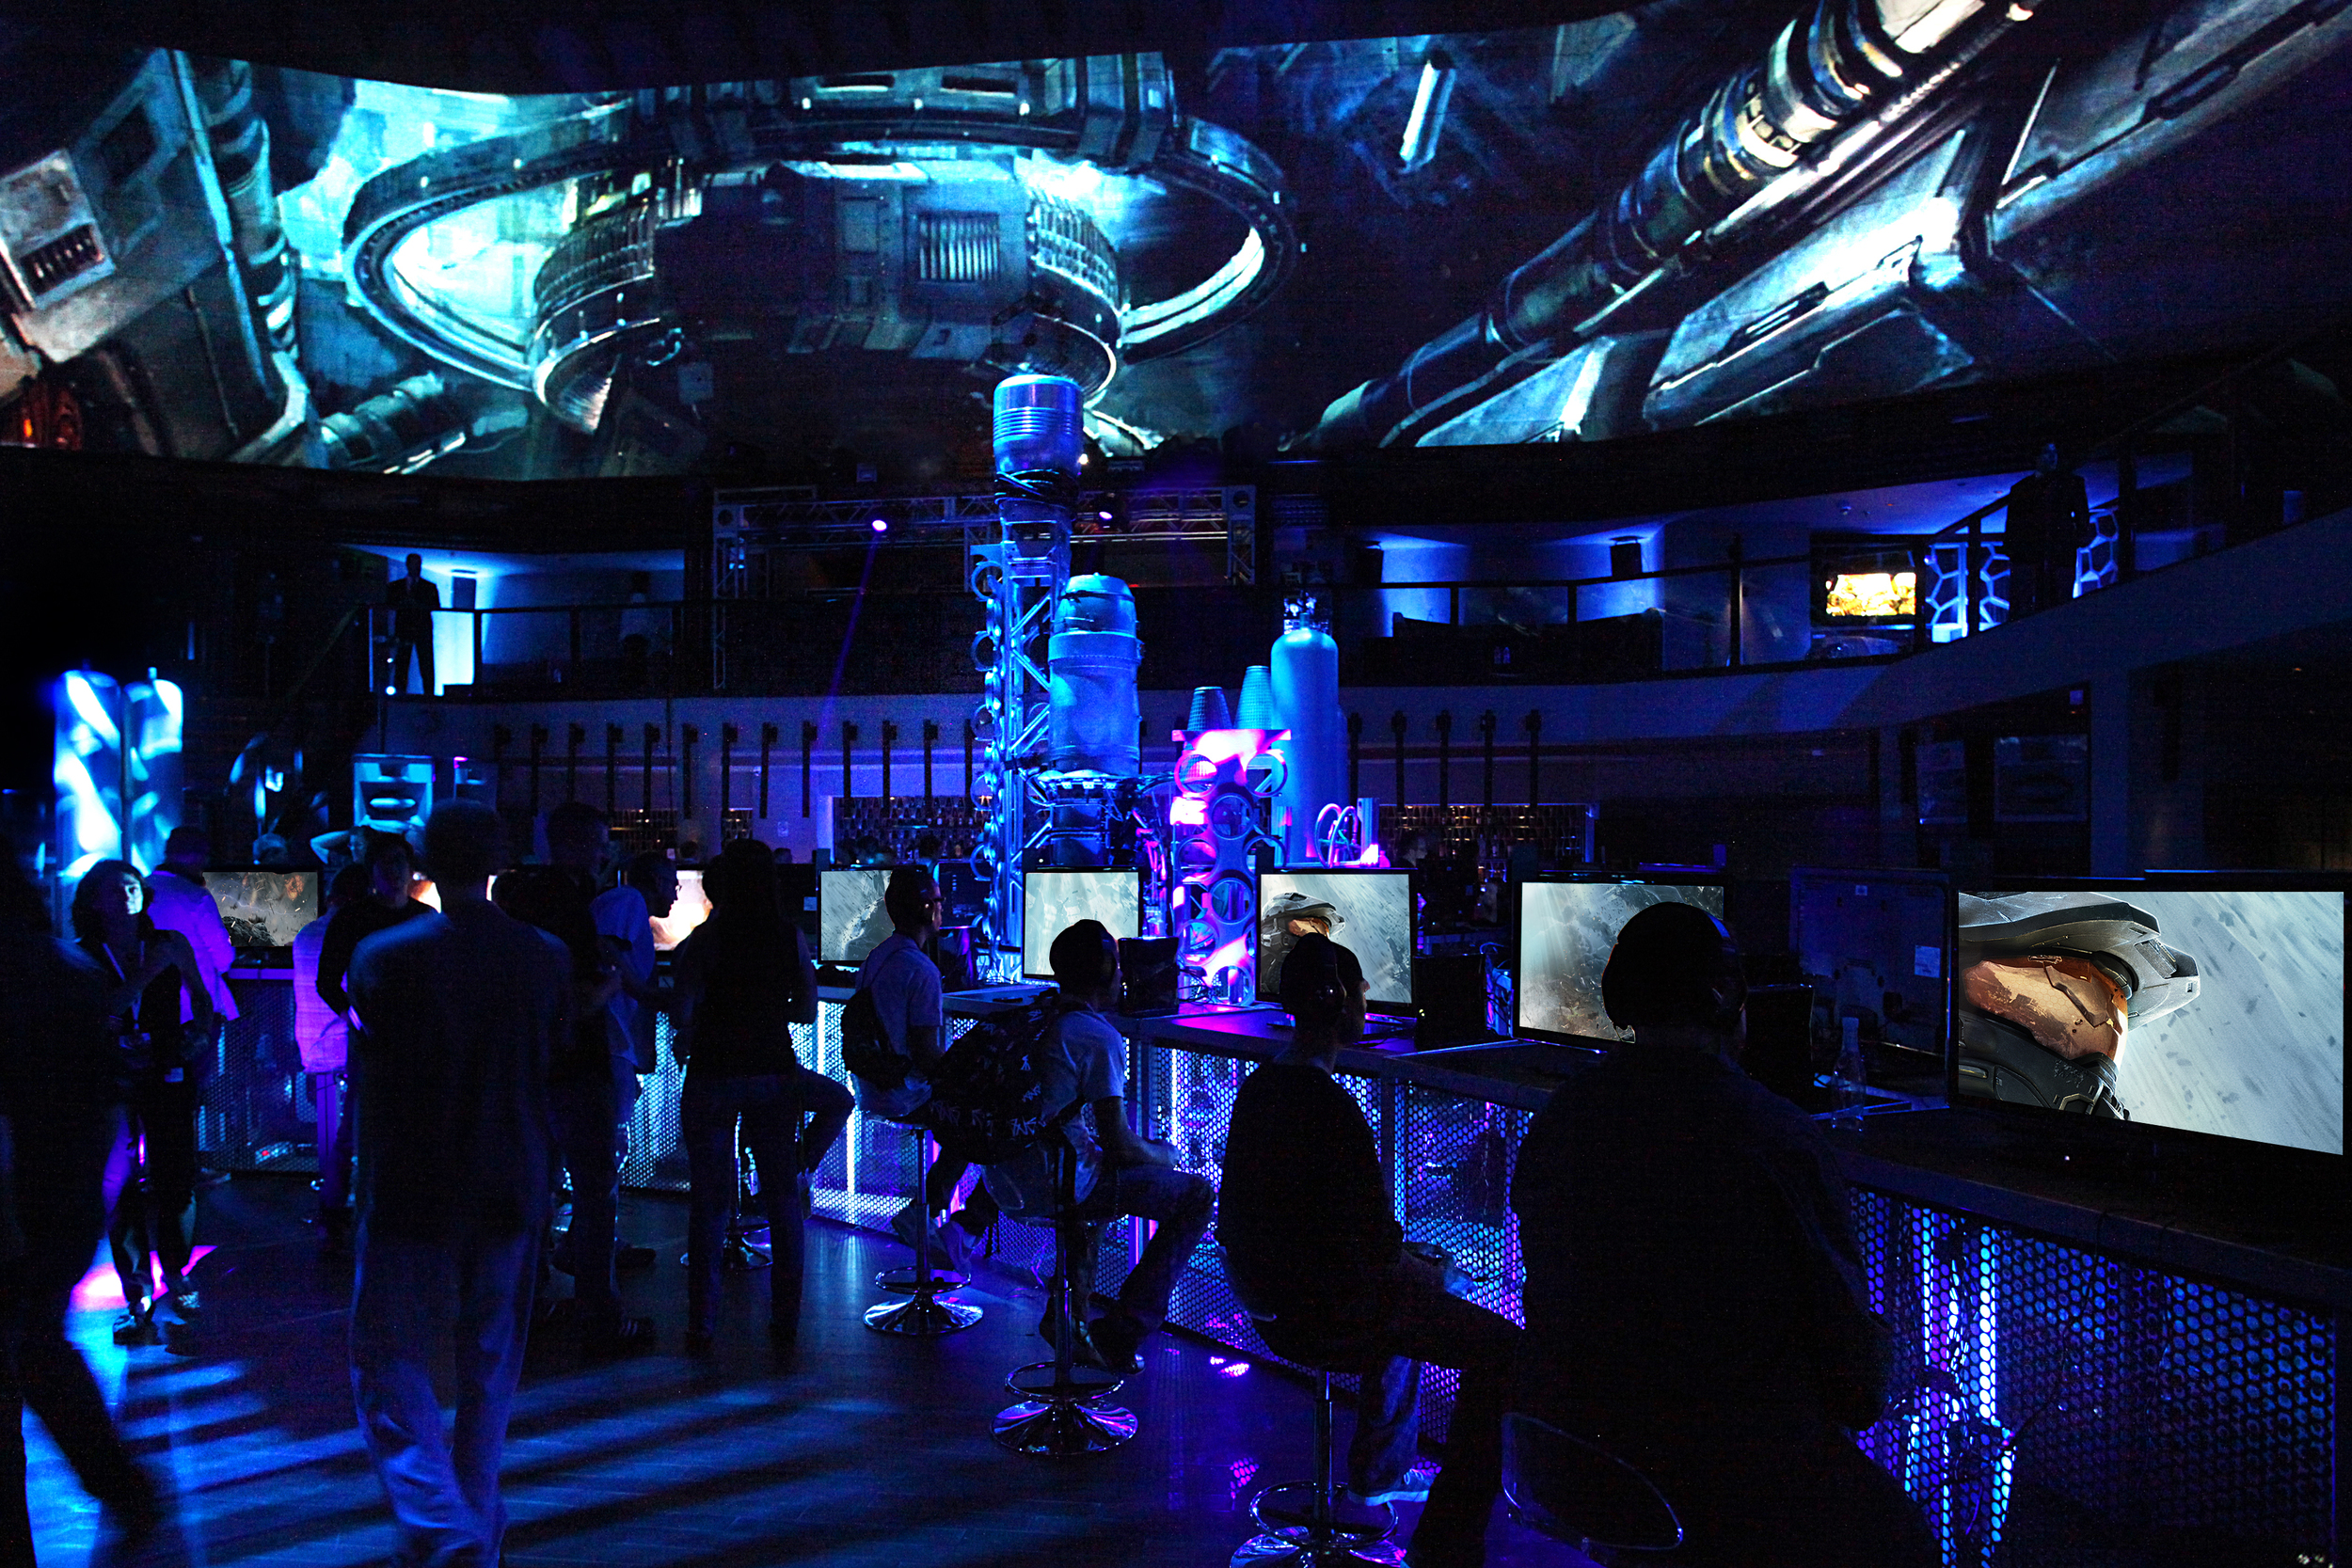 Halo 4 Launch Party